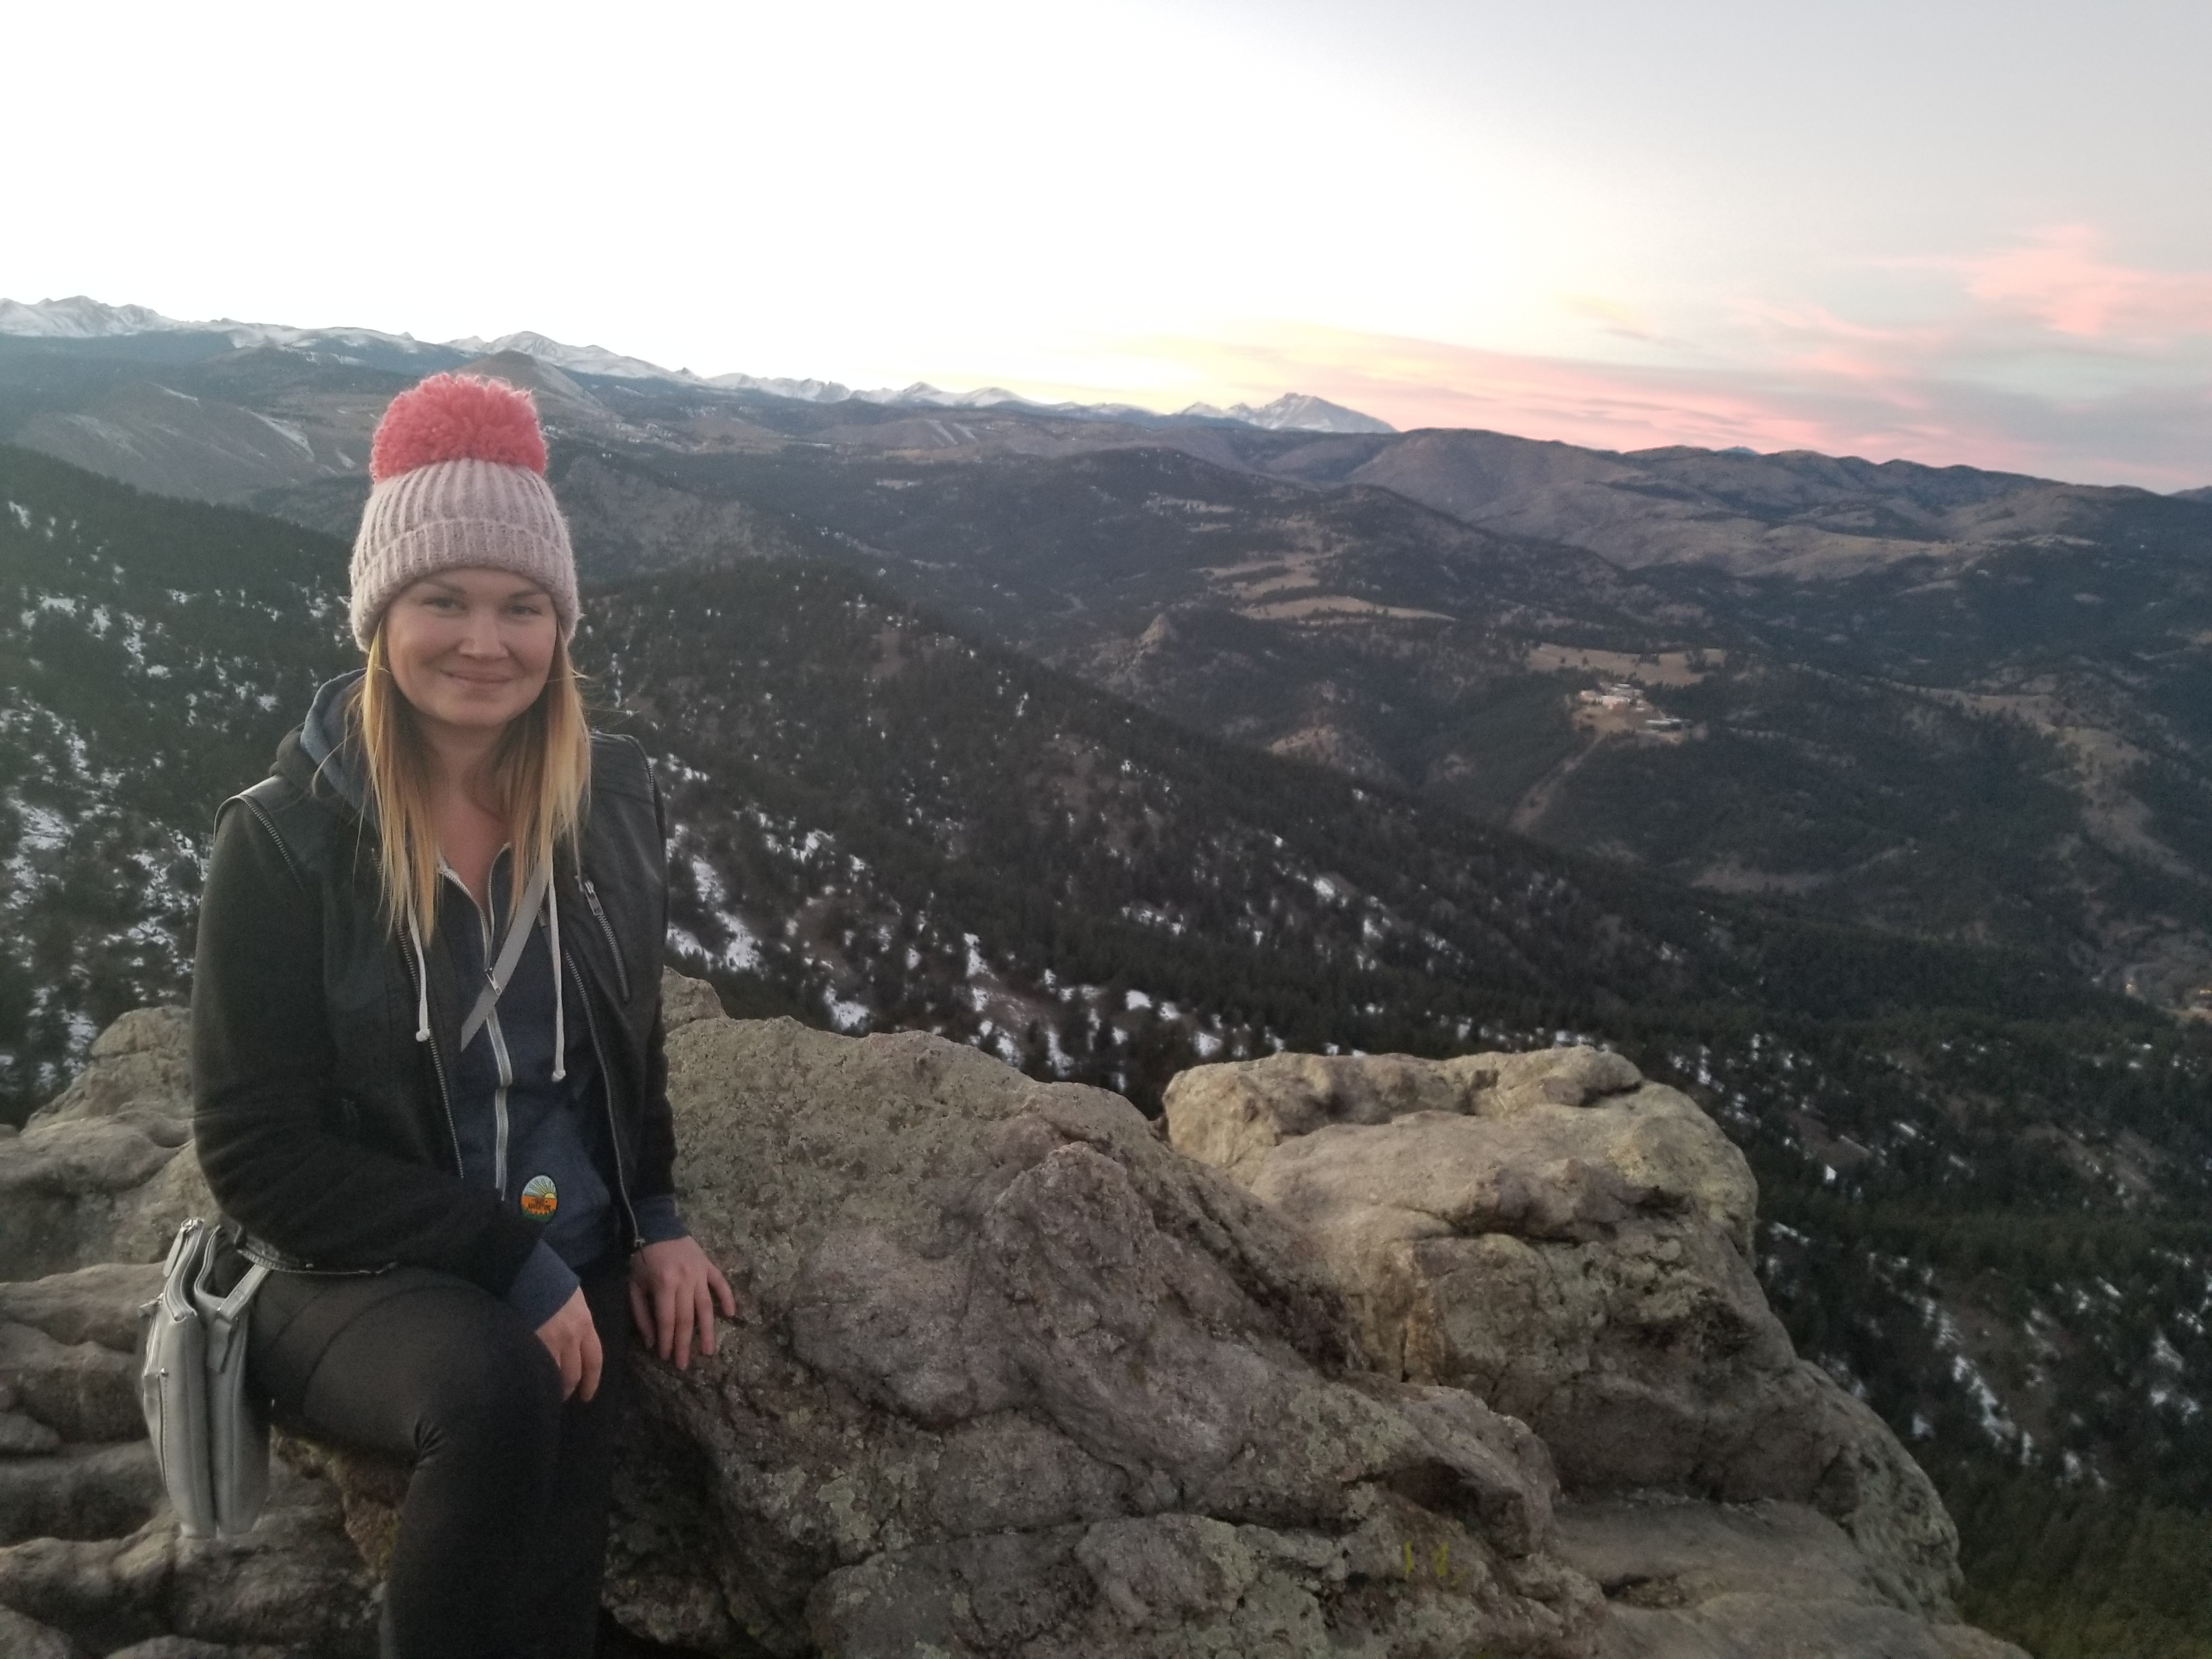 Me, quite literally facing my fear of heights after climbing to an epic lookout point in Boulder, CO.